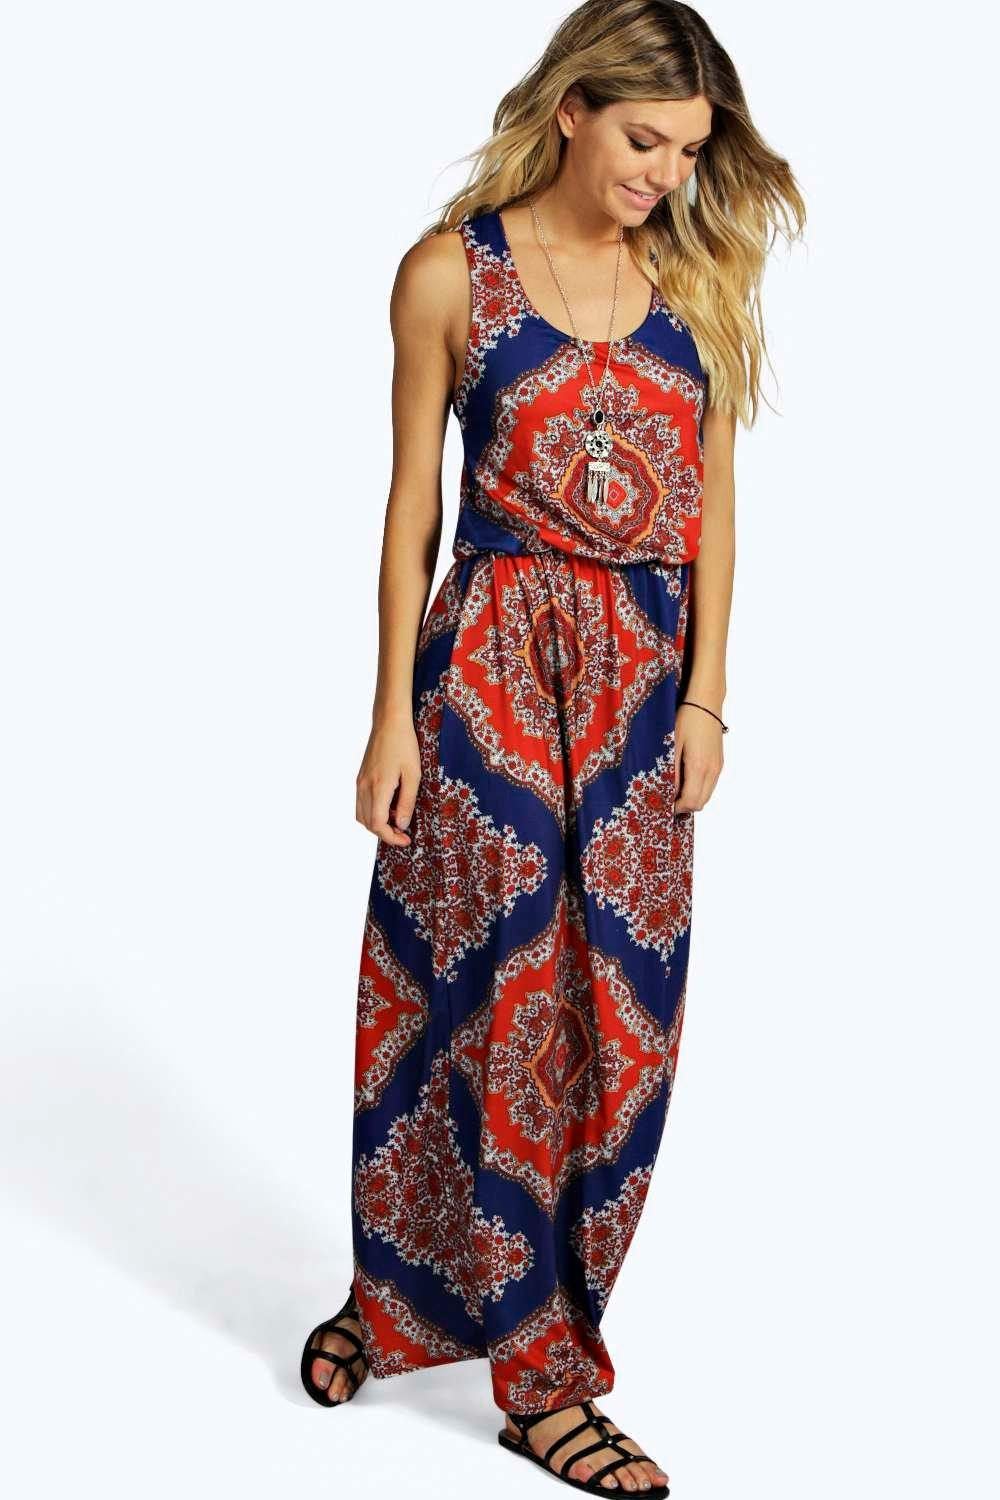 boohoo Mellisa 70's Paisley Bagged Over Maxi Dress - multi